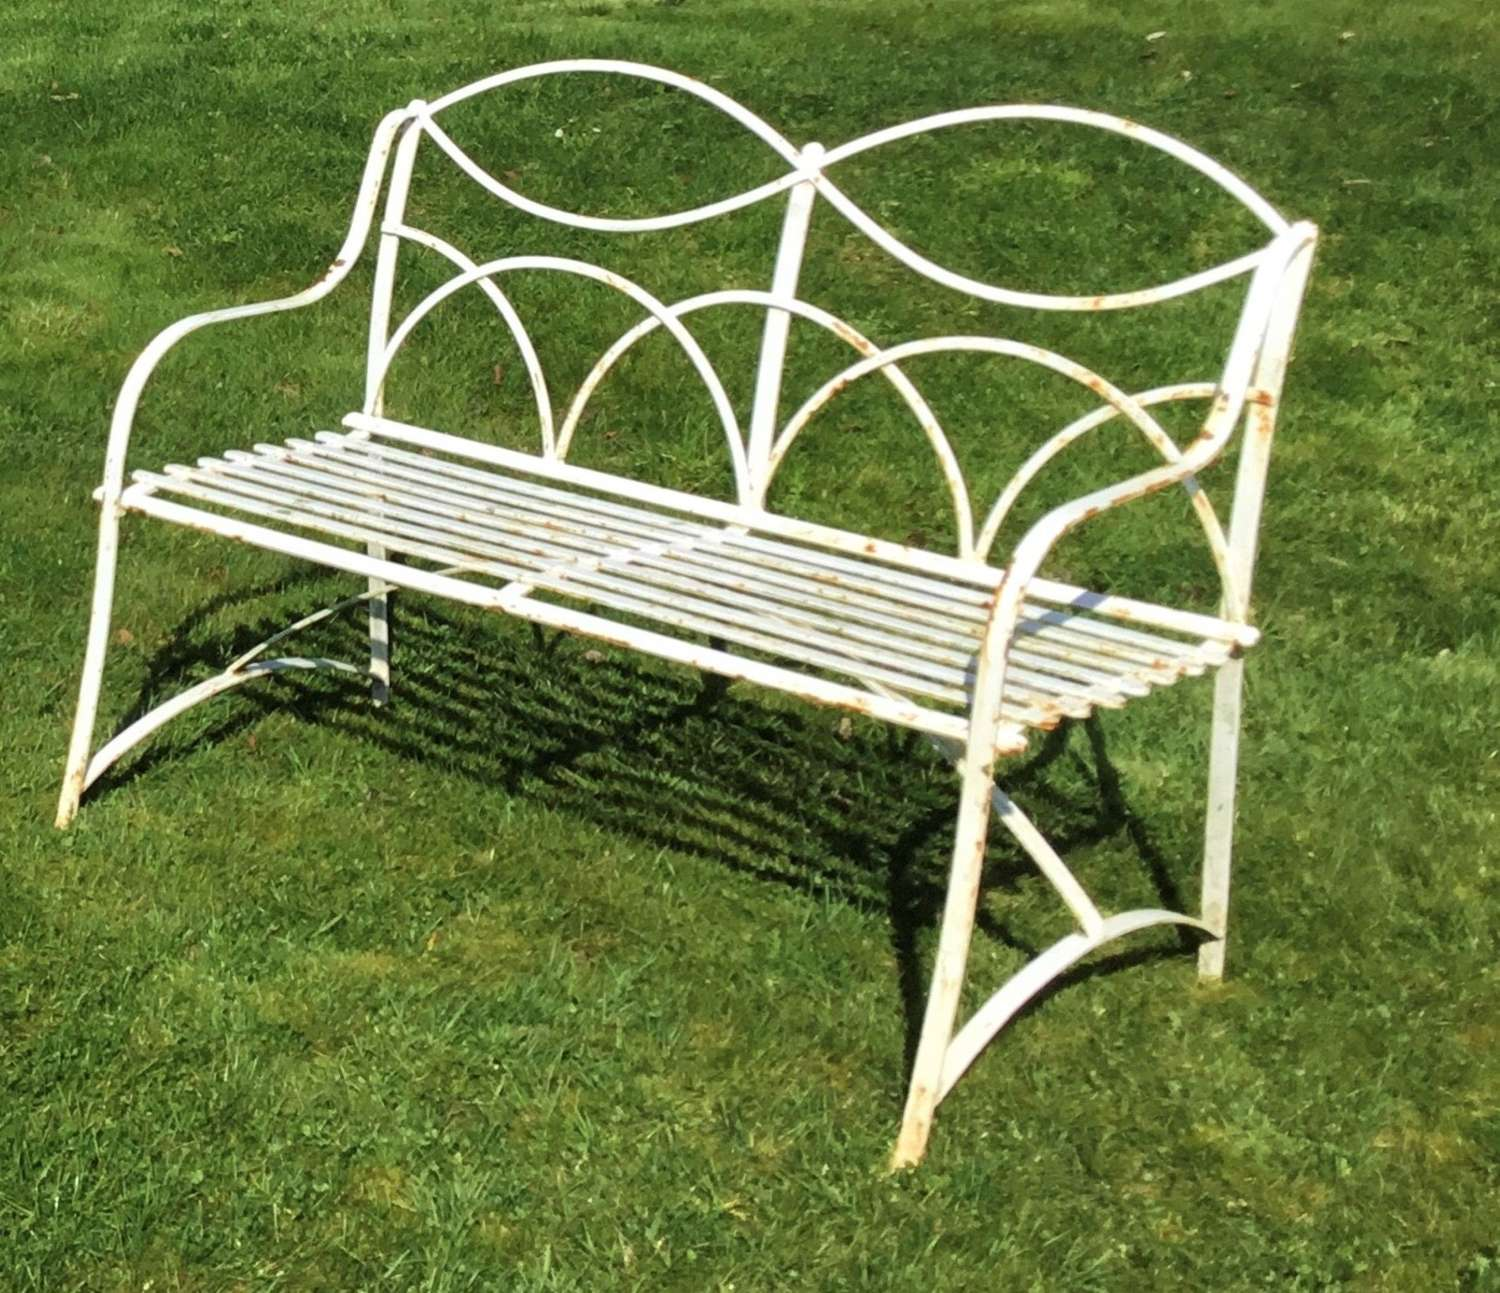 Early C20th twin seat wrought iron garden seat/bench